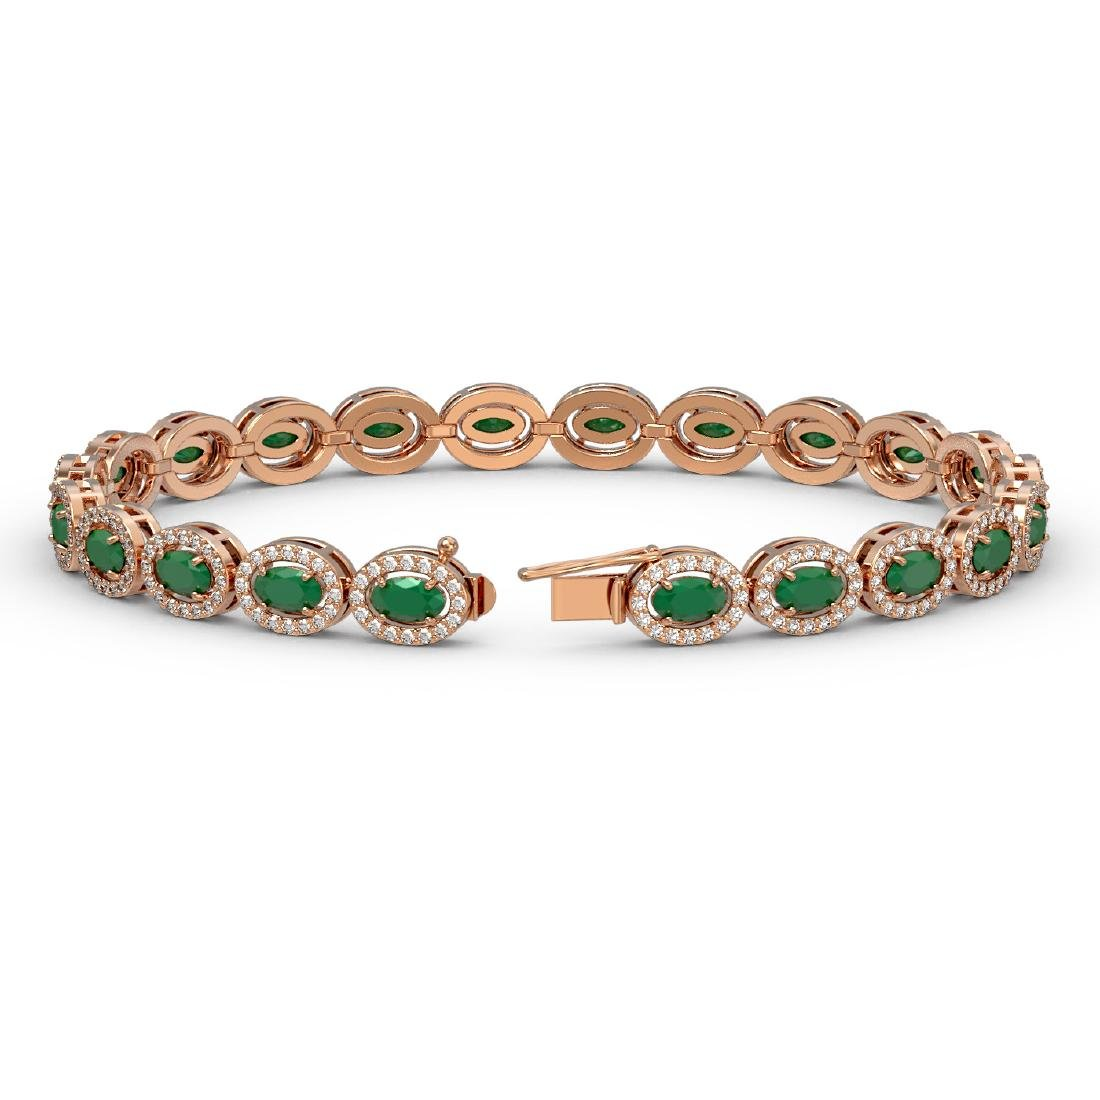 11.58 CTW Emerald & Diamond Halo Bracelet 10K Rose Gold - 2